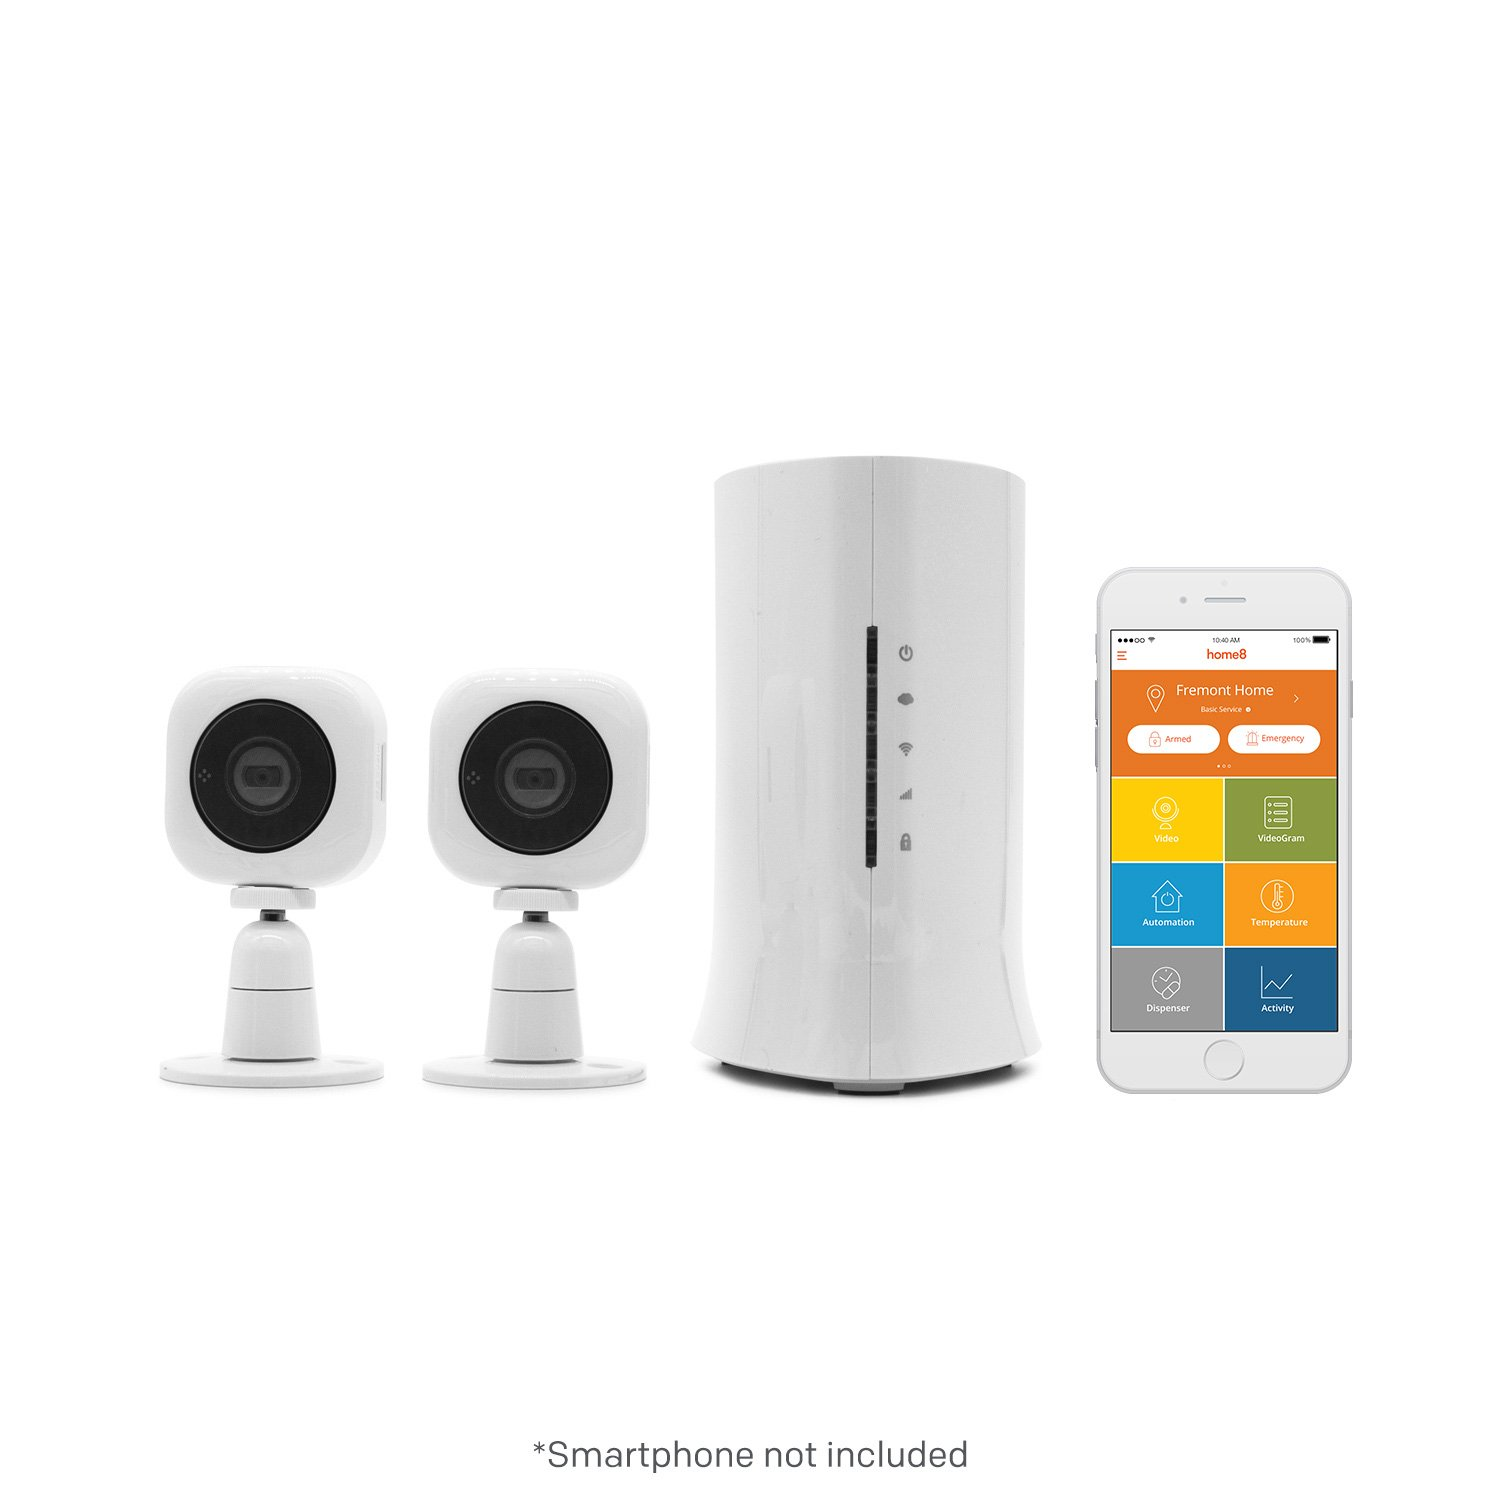 Home8 Video-Verified Monitoring/Alarm System with Two (2) Cube HD Security Cameras, Wireless Security System with Free Basic Service, featuring Amazon Alexa Integration